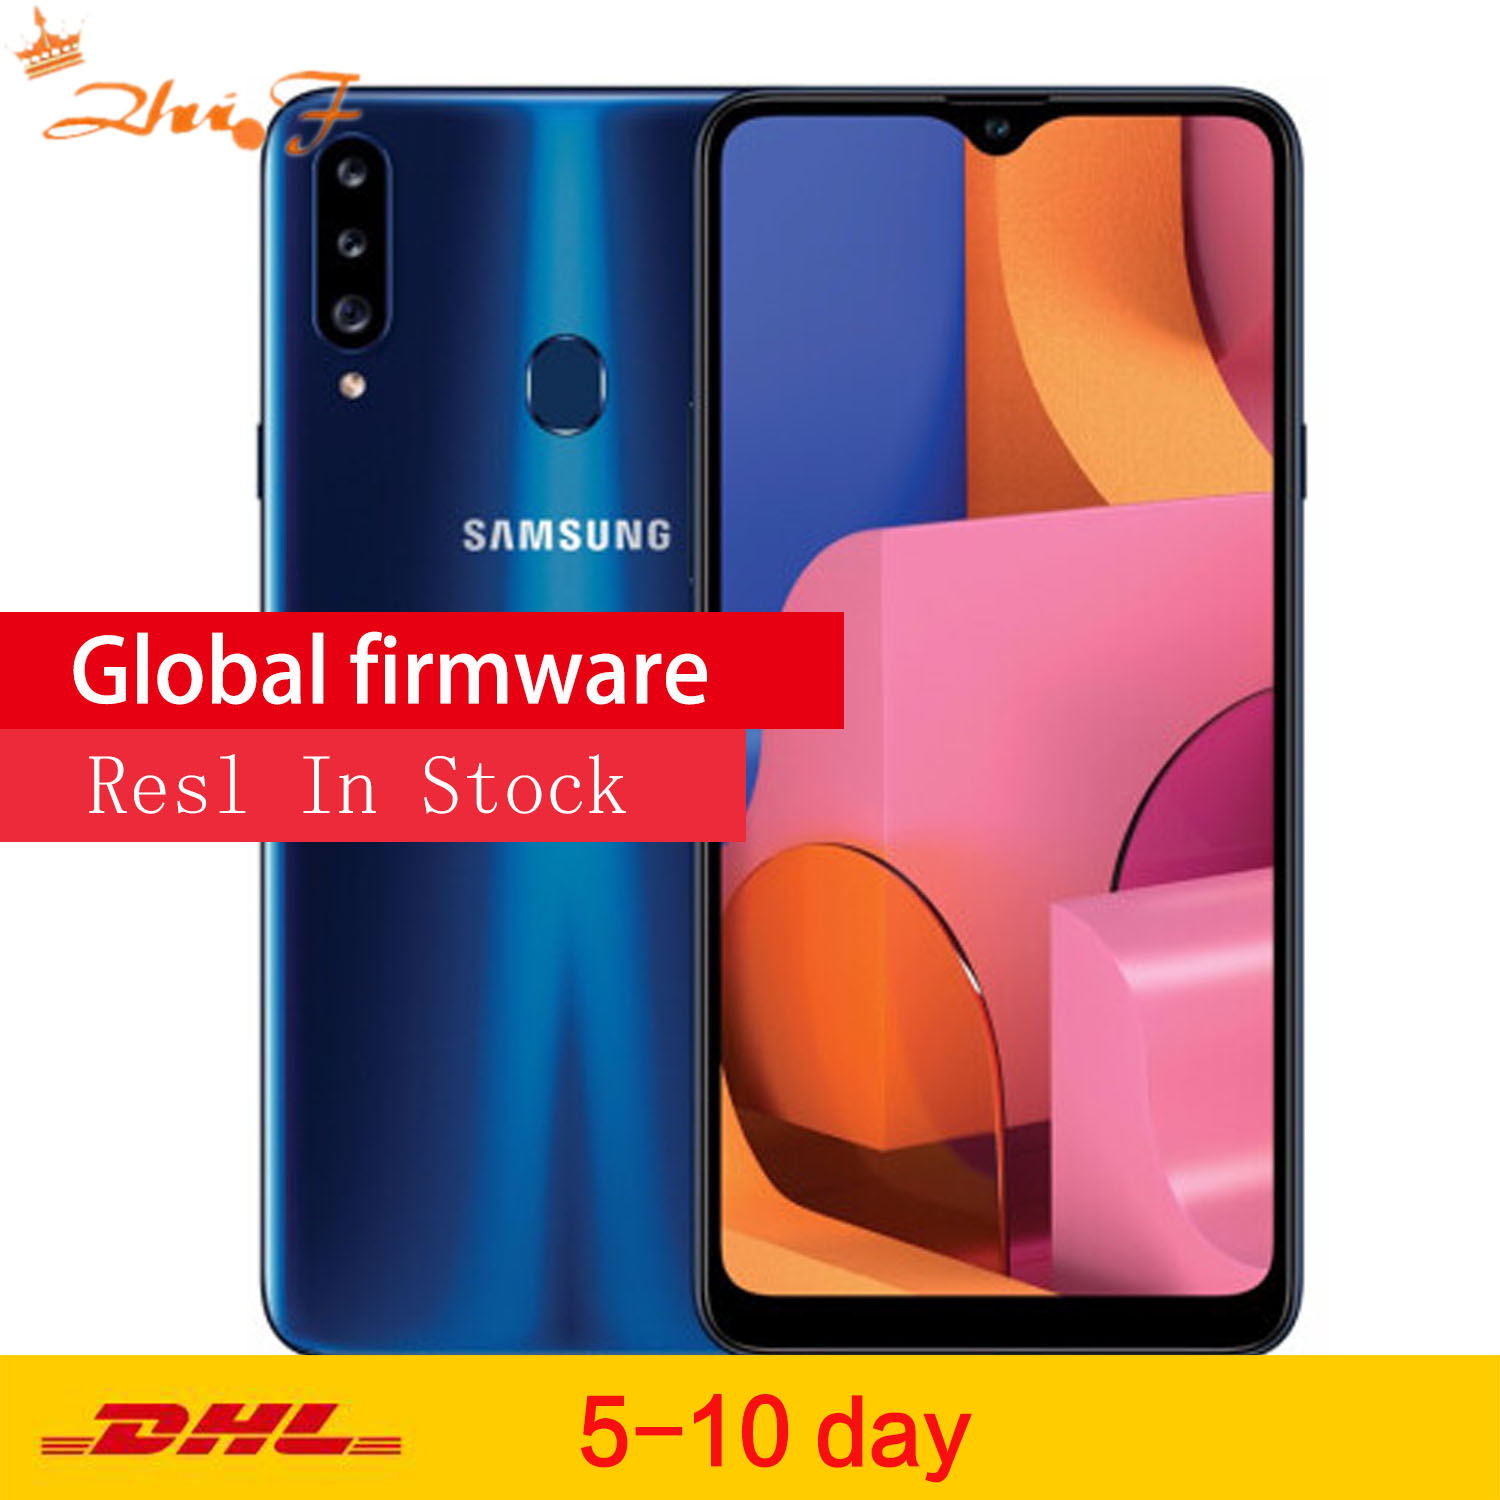 new origina <font><b>Samsung</b></font> <font><b>Galaxy</b></font> <font><b>A20s</b></font> (SM-A2070) LTE Mobile Phone 6.5 4G RAM 64GB ROM Snapdragon 450 13.0MP Rear Camera Phone image